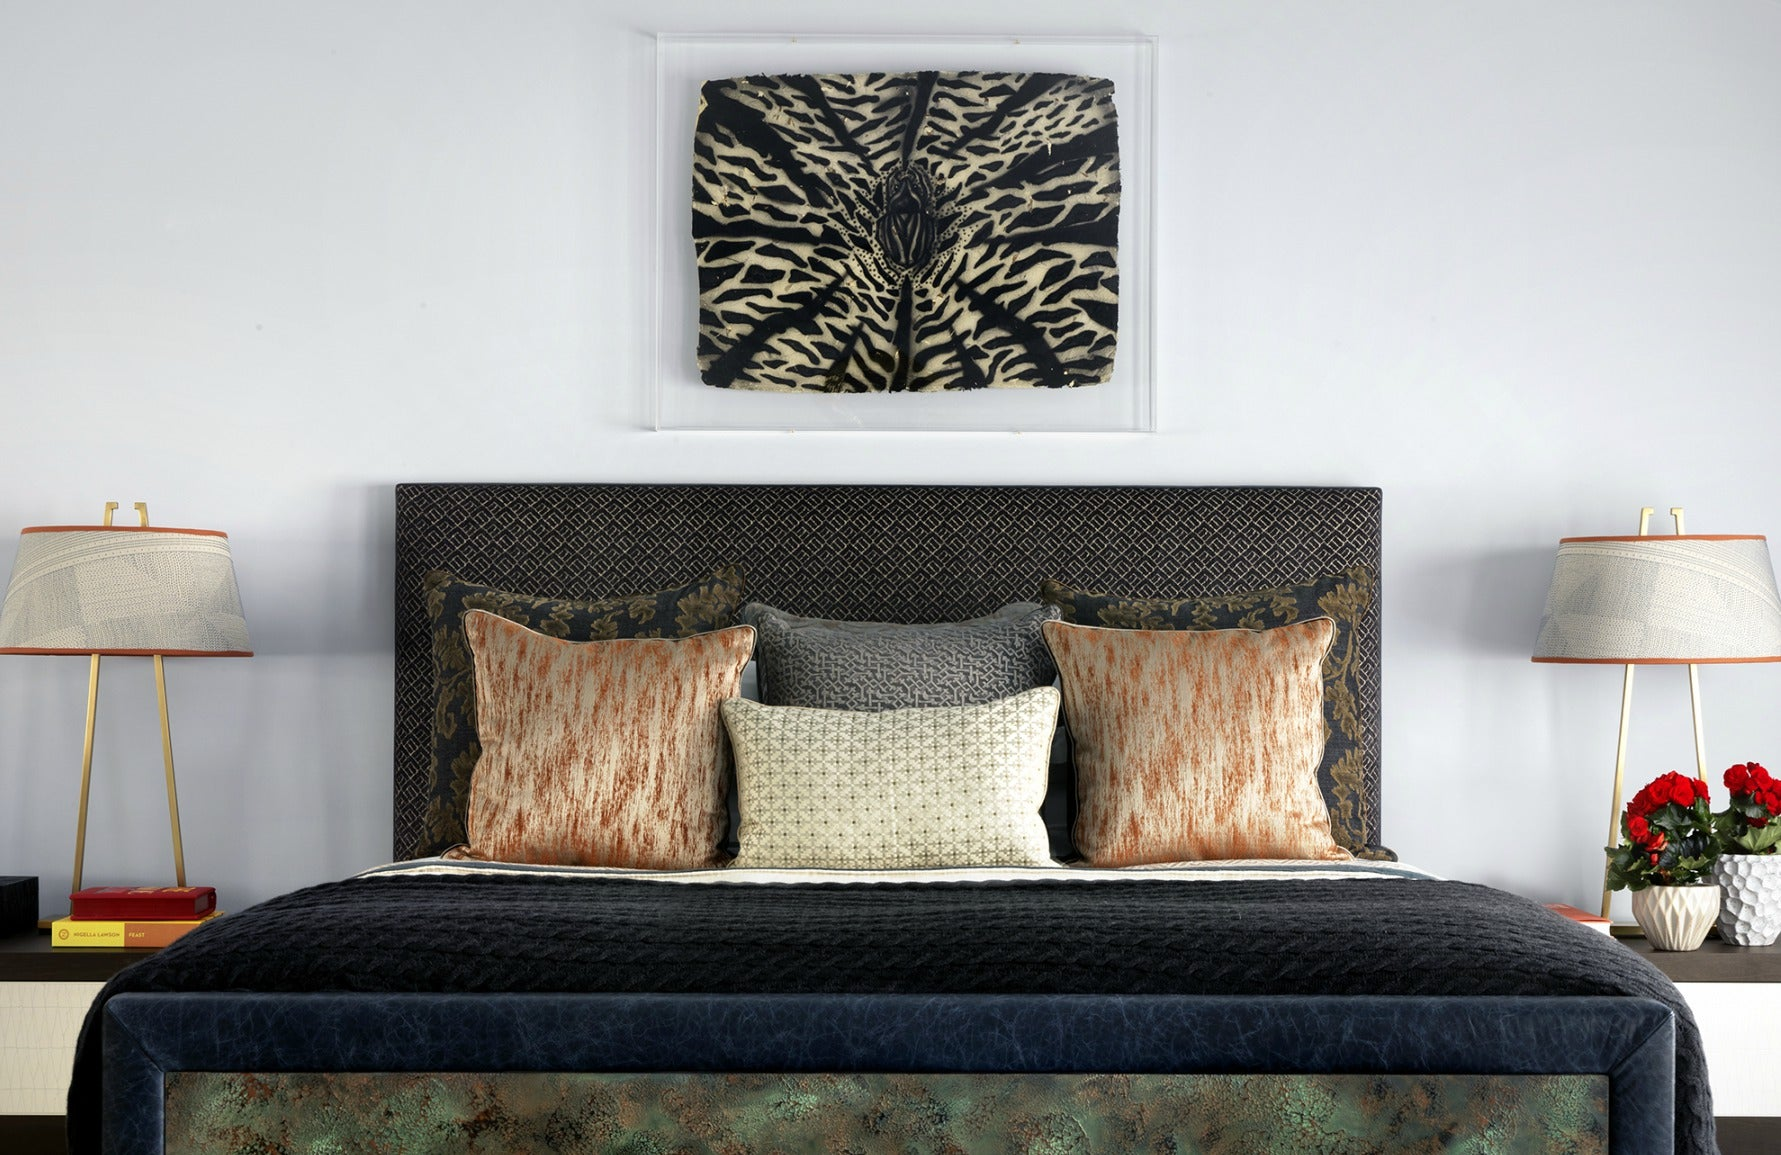 6 Ideas How To Style Your Bedside Table Like a Pro | LuxDeco